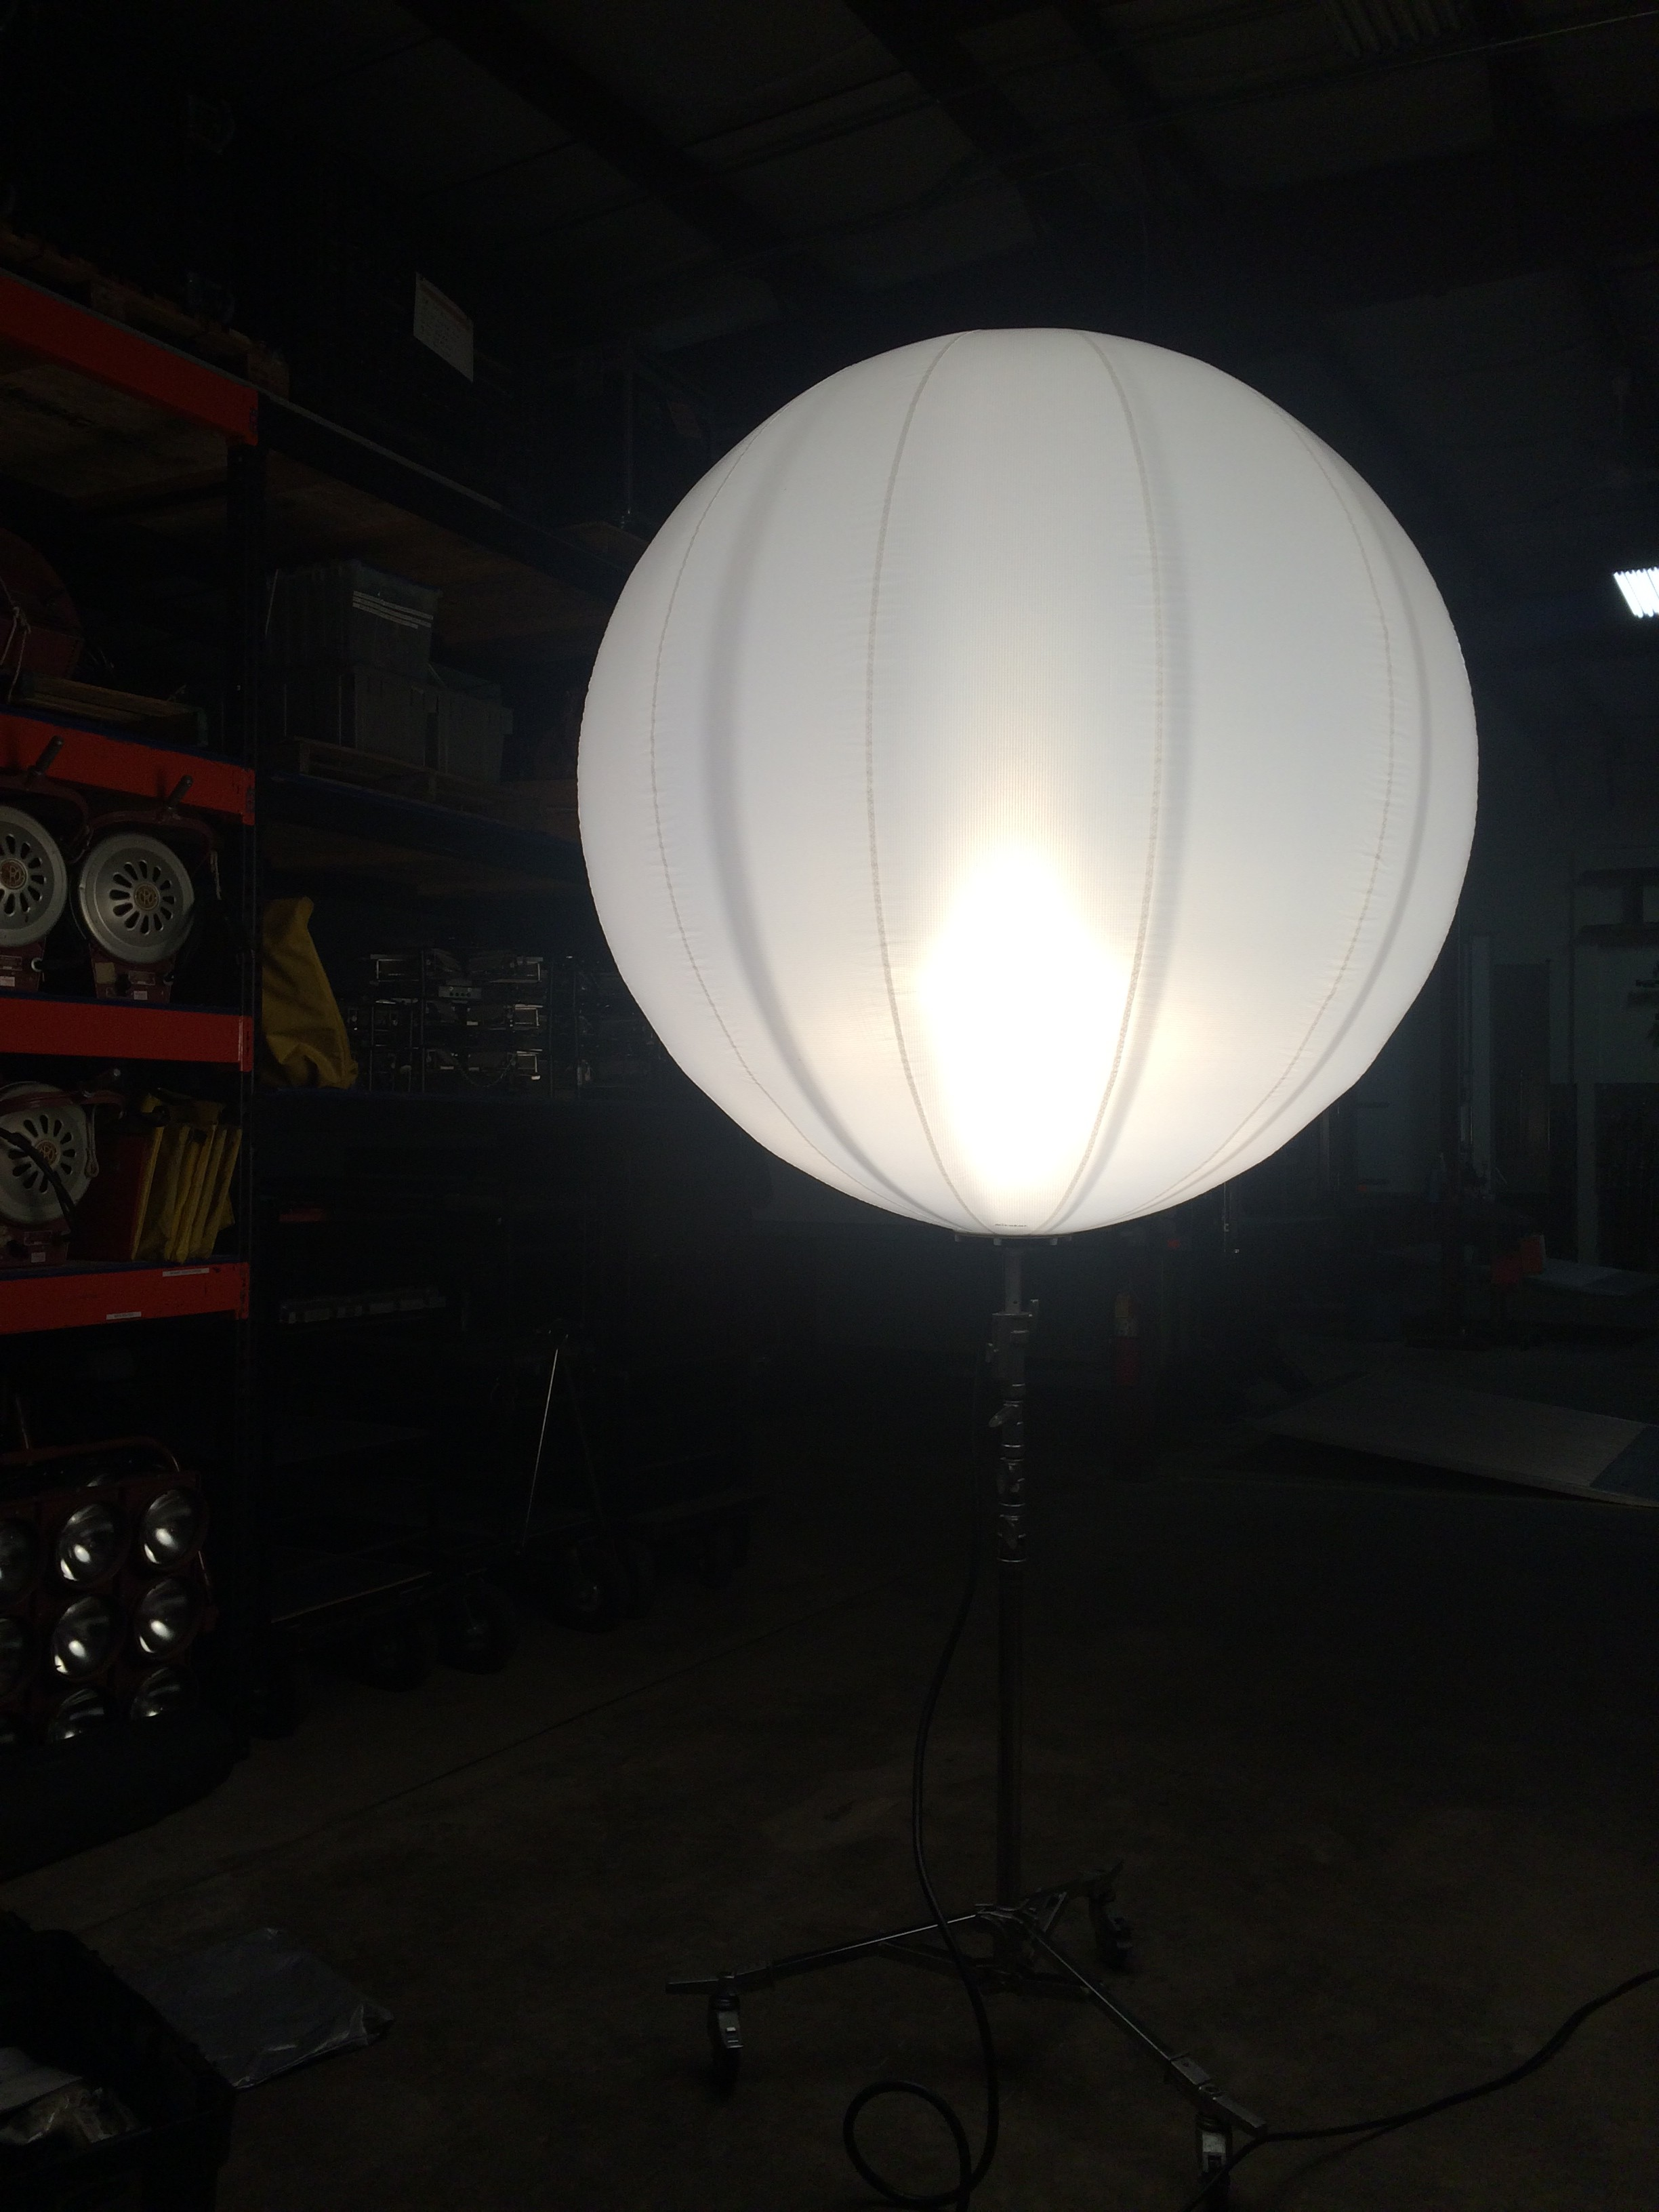 how to make lightning with a balloon